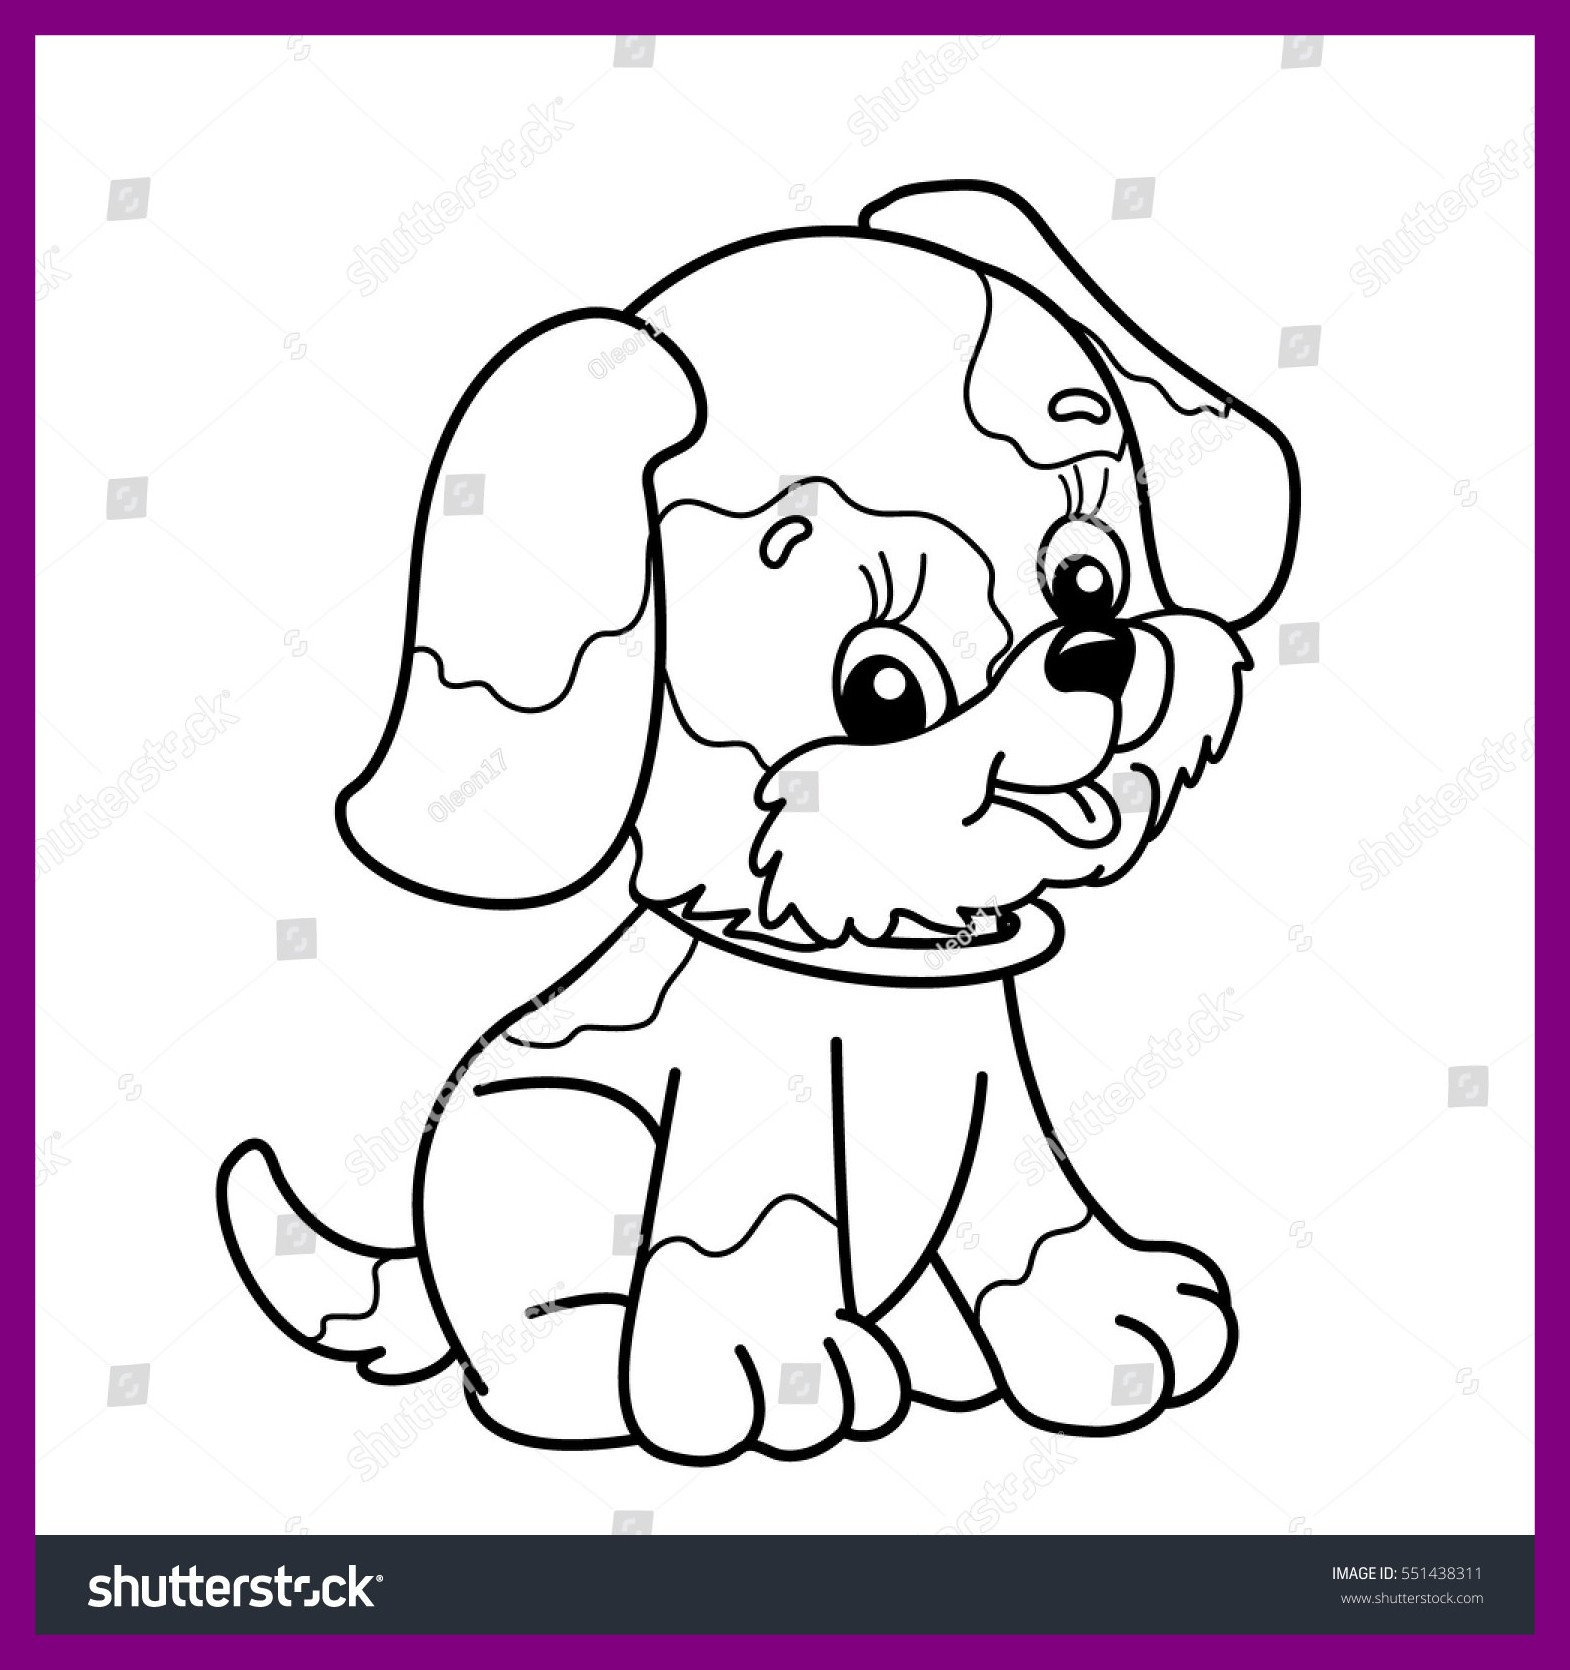 1570x1670 Cartoon Puppies Coloring Pages Fresh Coloring Page Outline Cartoon